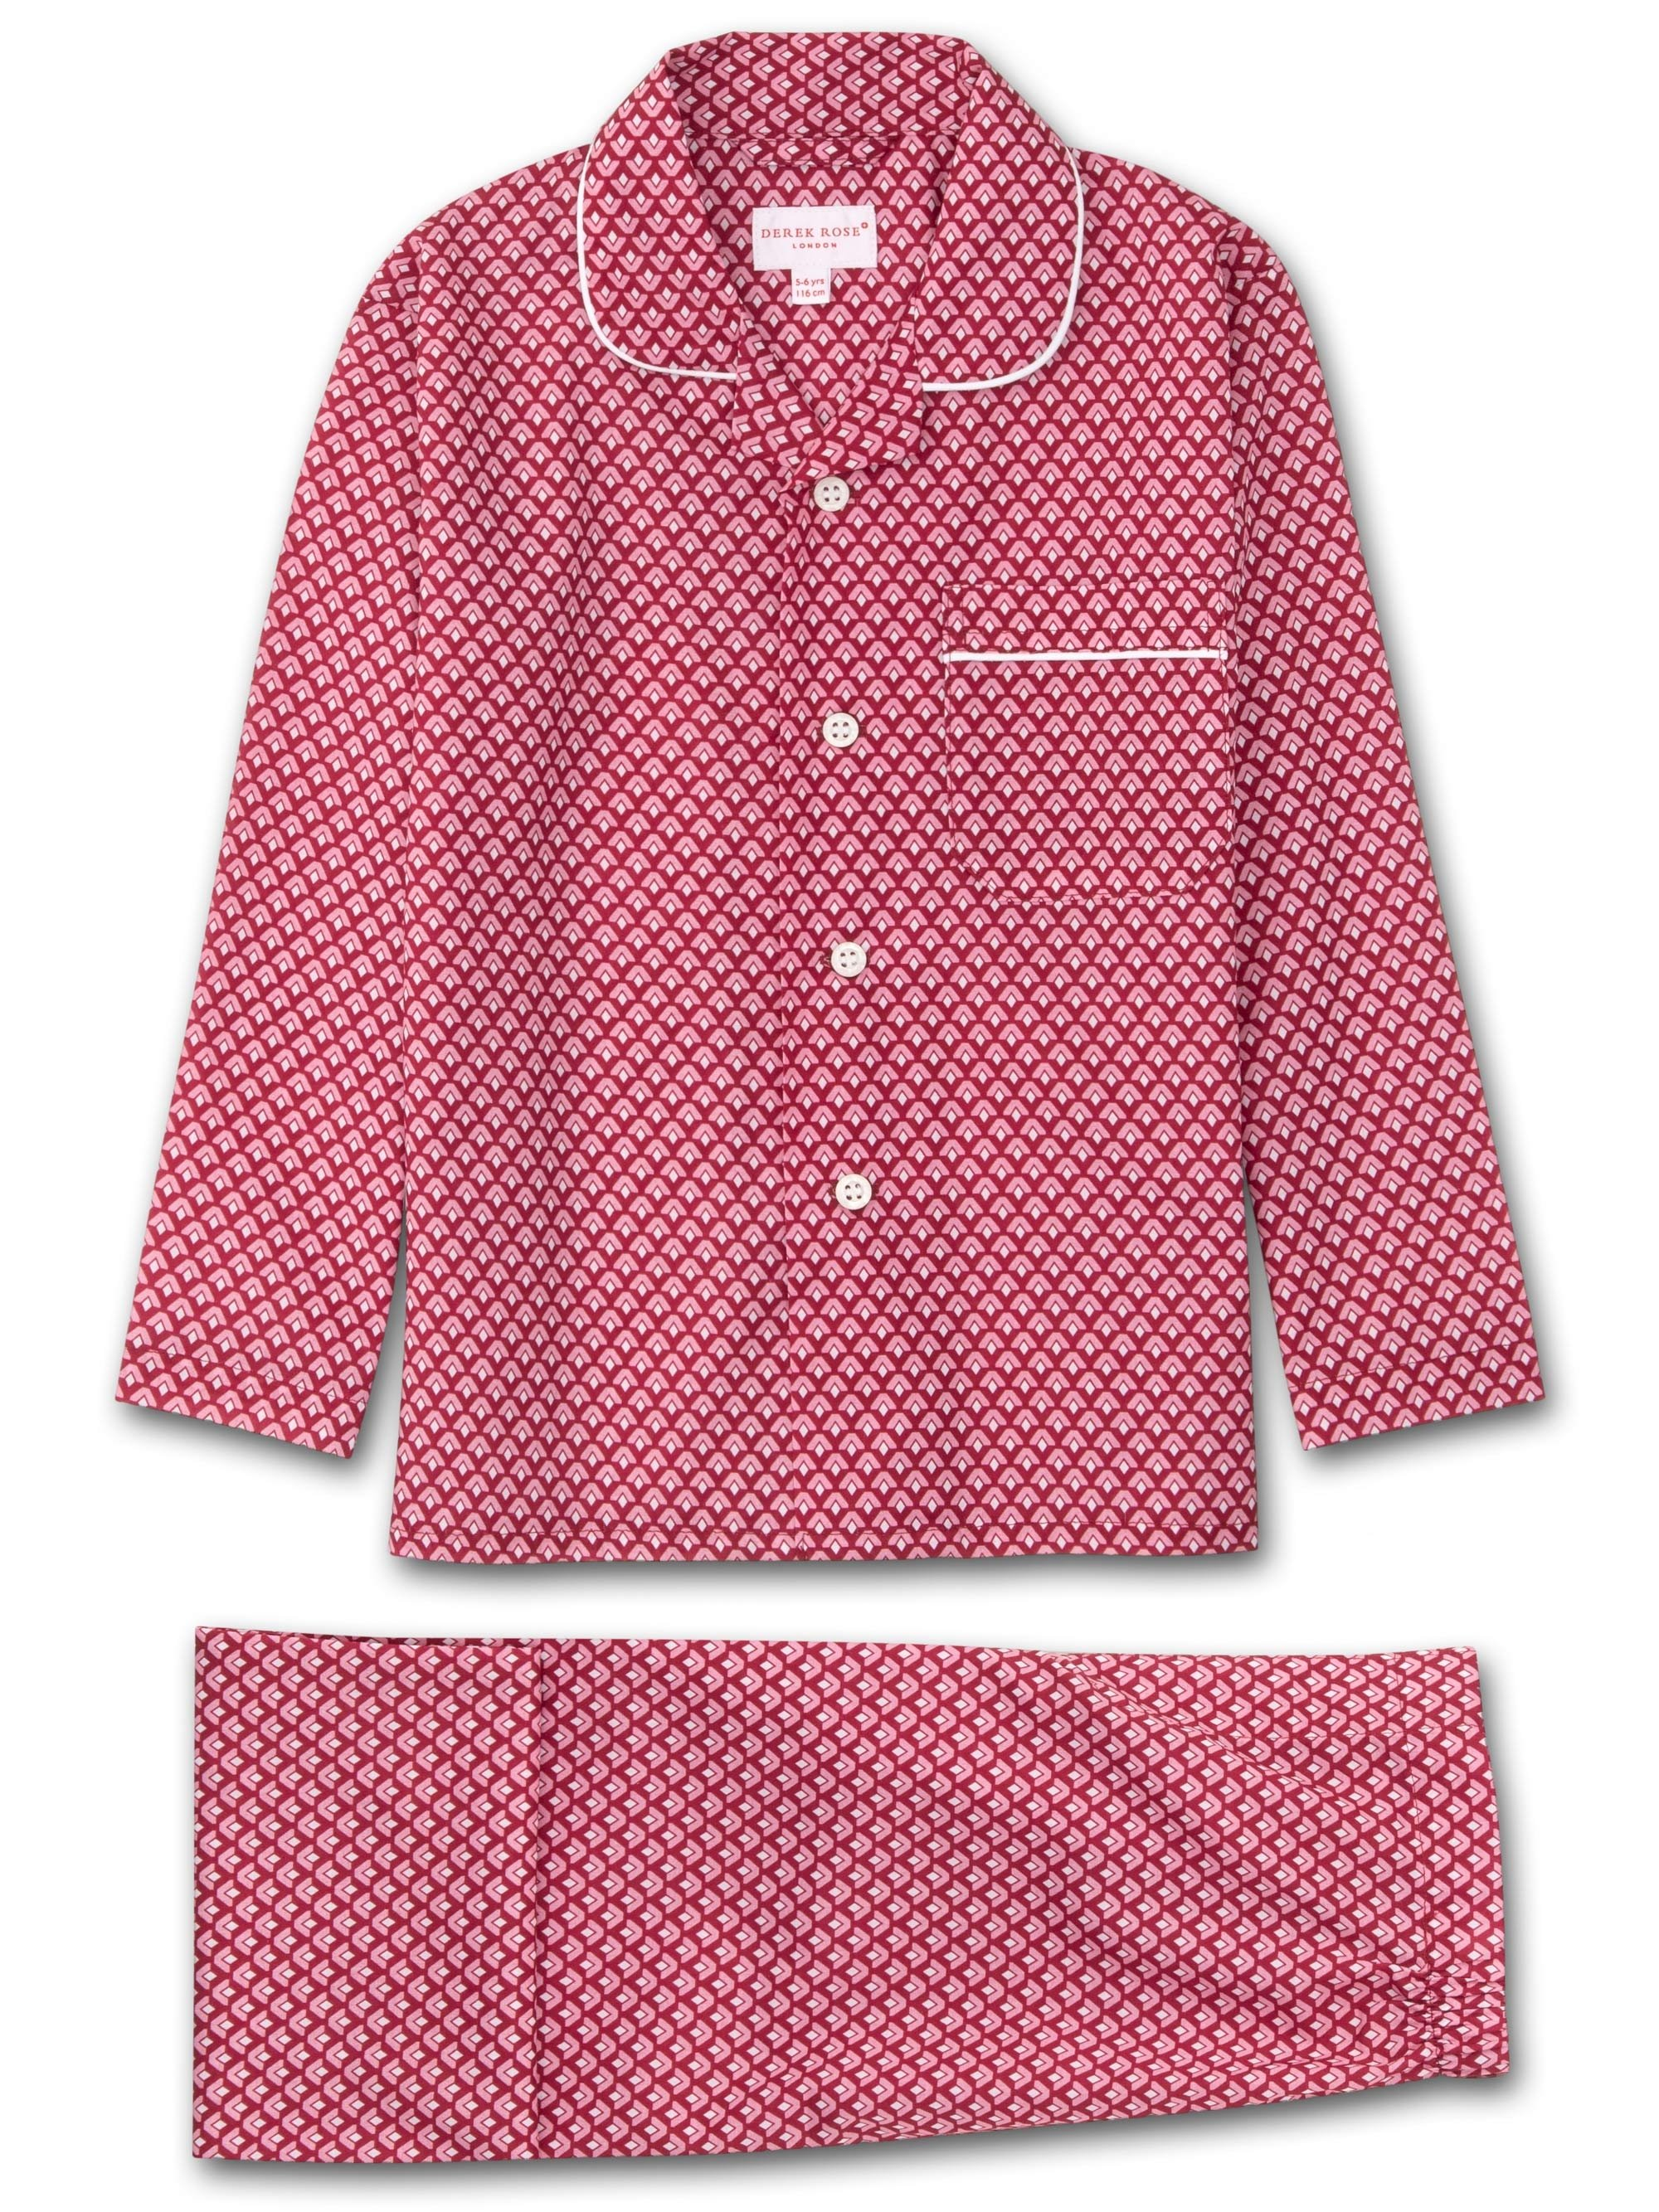 Kids' Pyjamas Ledbury 31 Cotton Batiste Pink